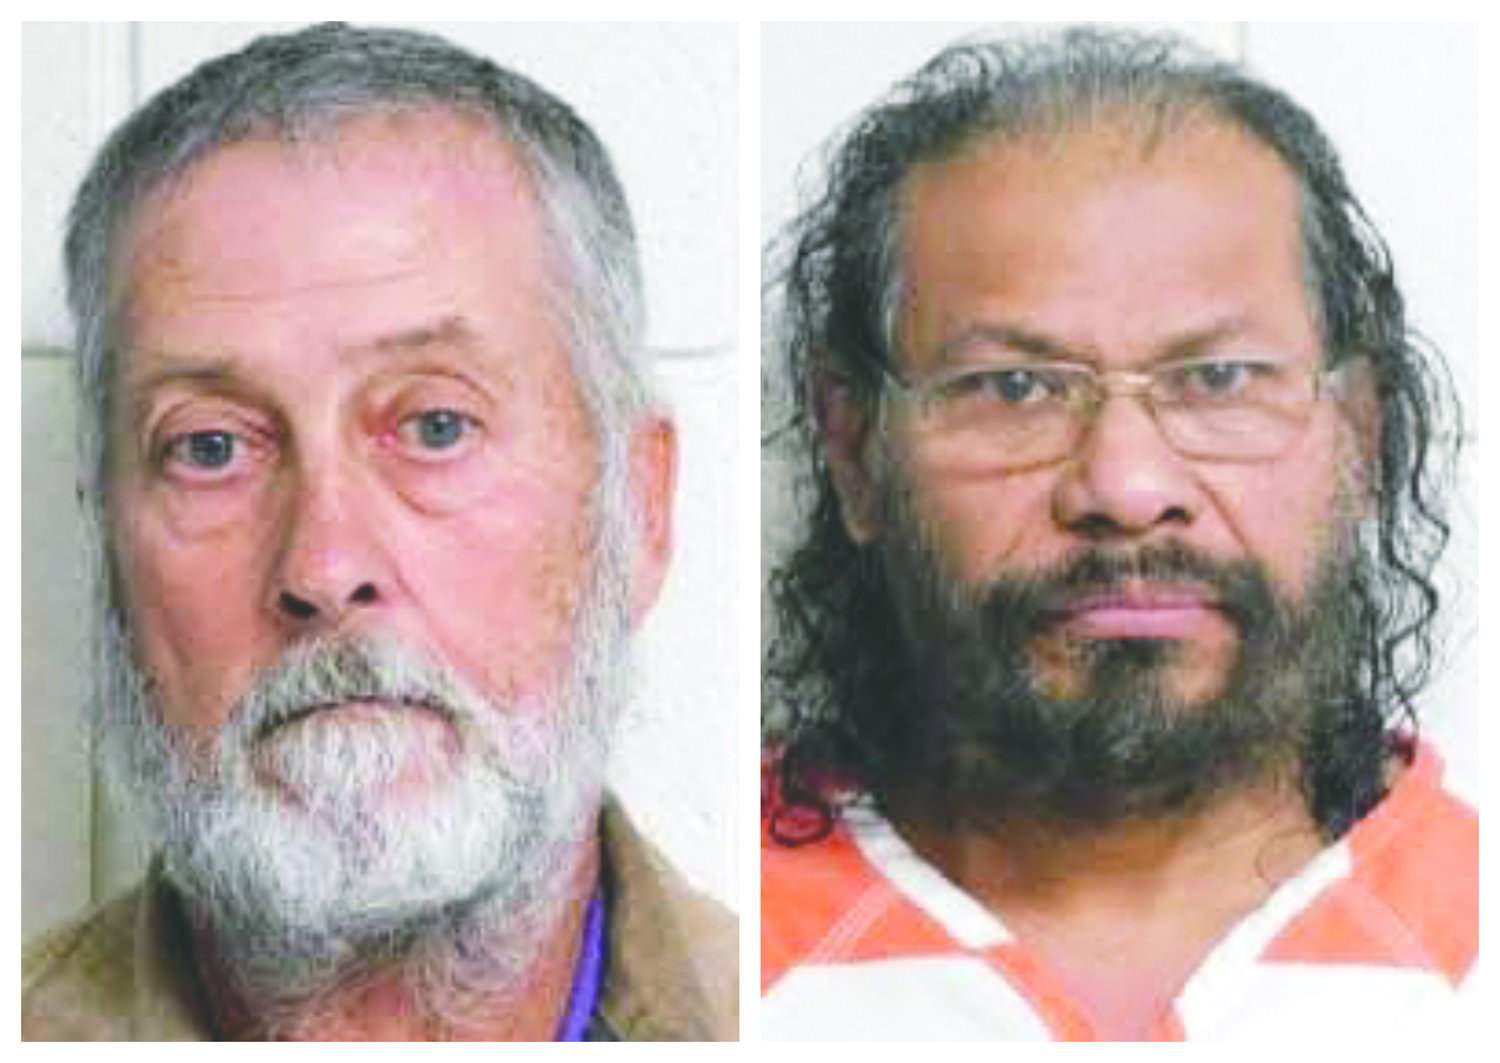 Delmus 'Buddy' Foss, 63, at left, and 61-year-old Rene Zuncin, right, are charged with having sexual misconduct with minors in Duplin County.